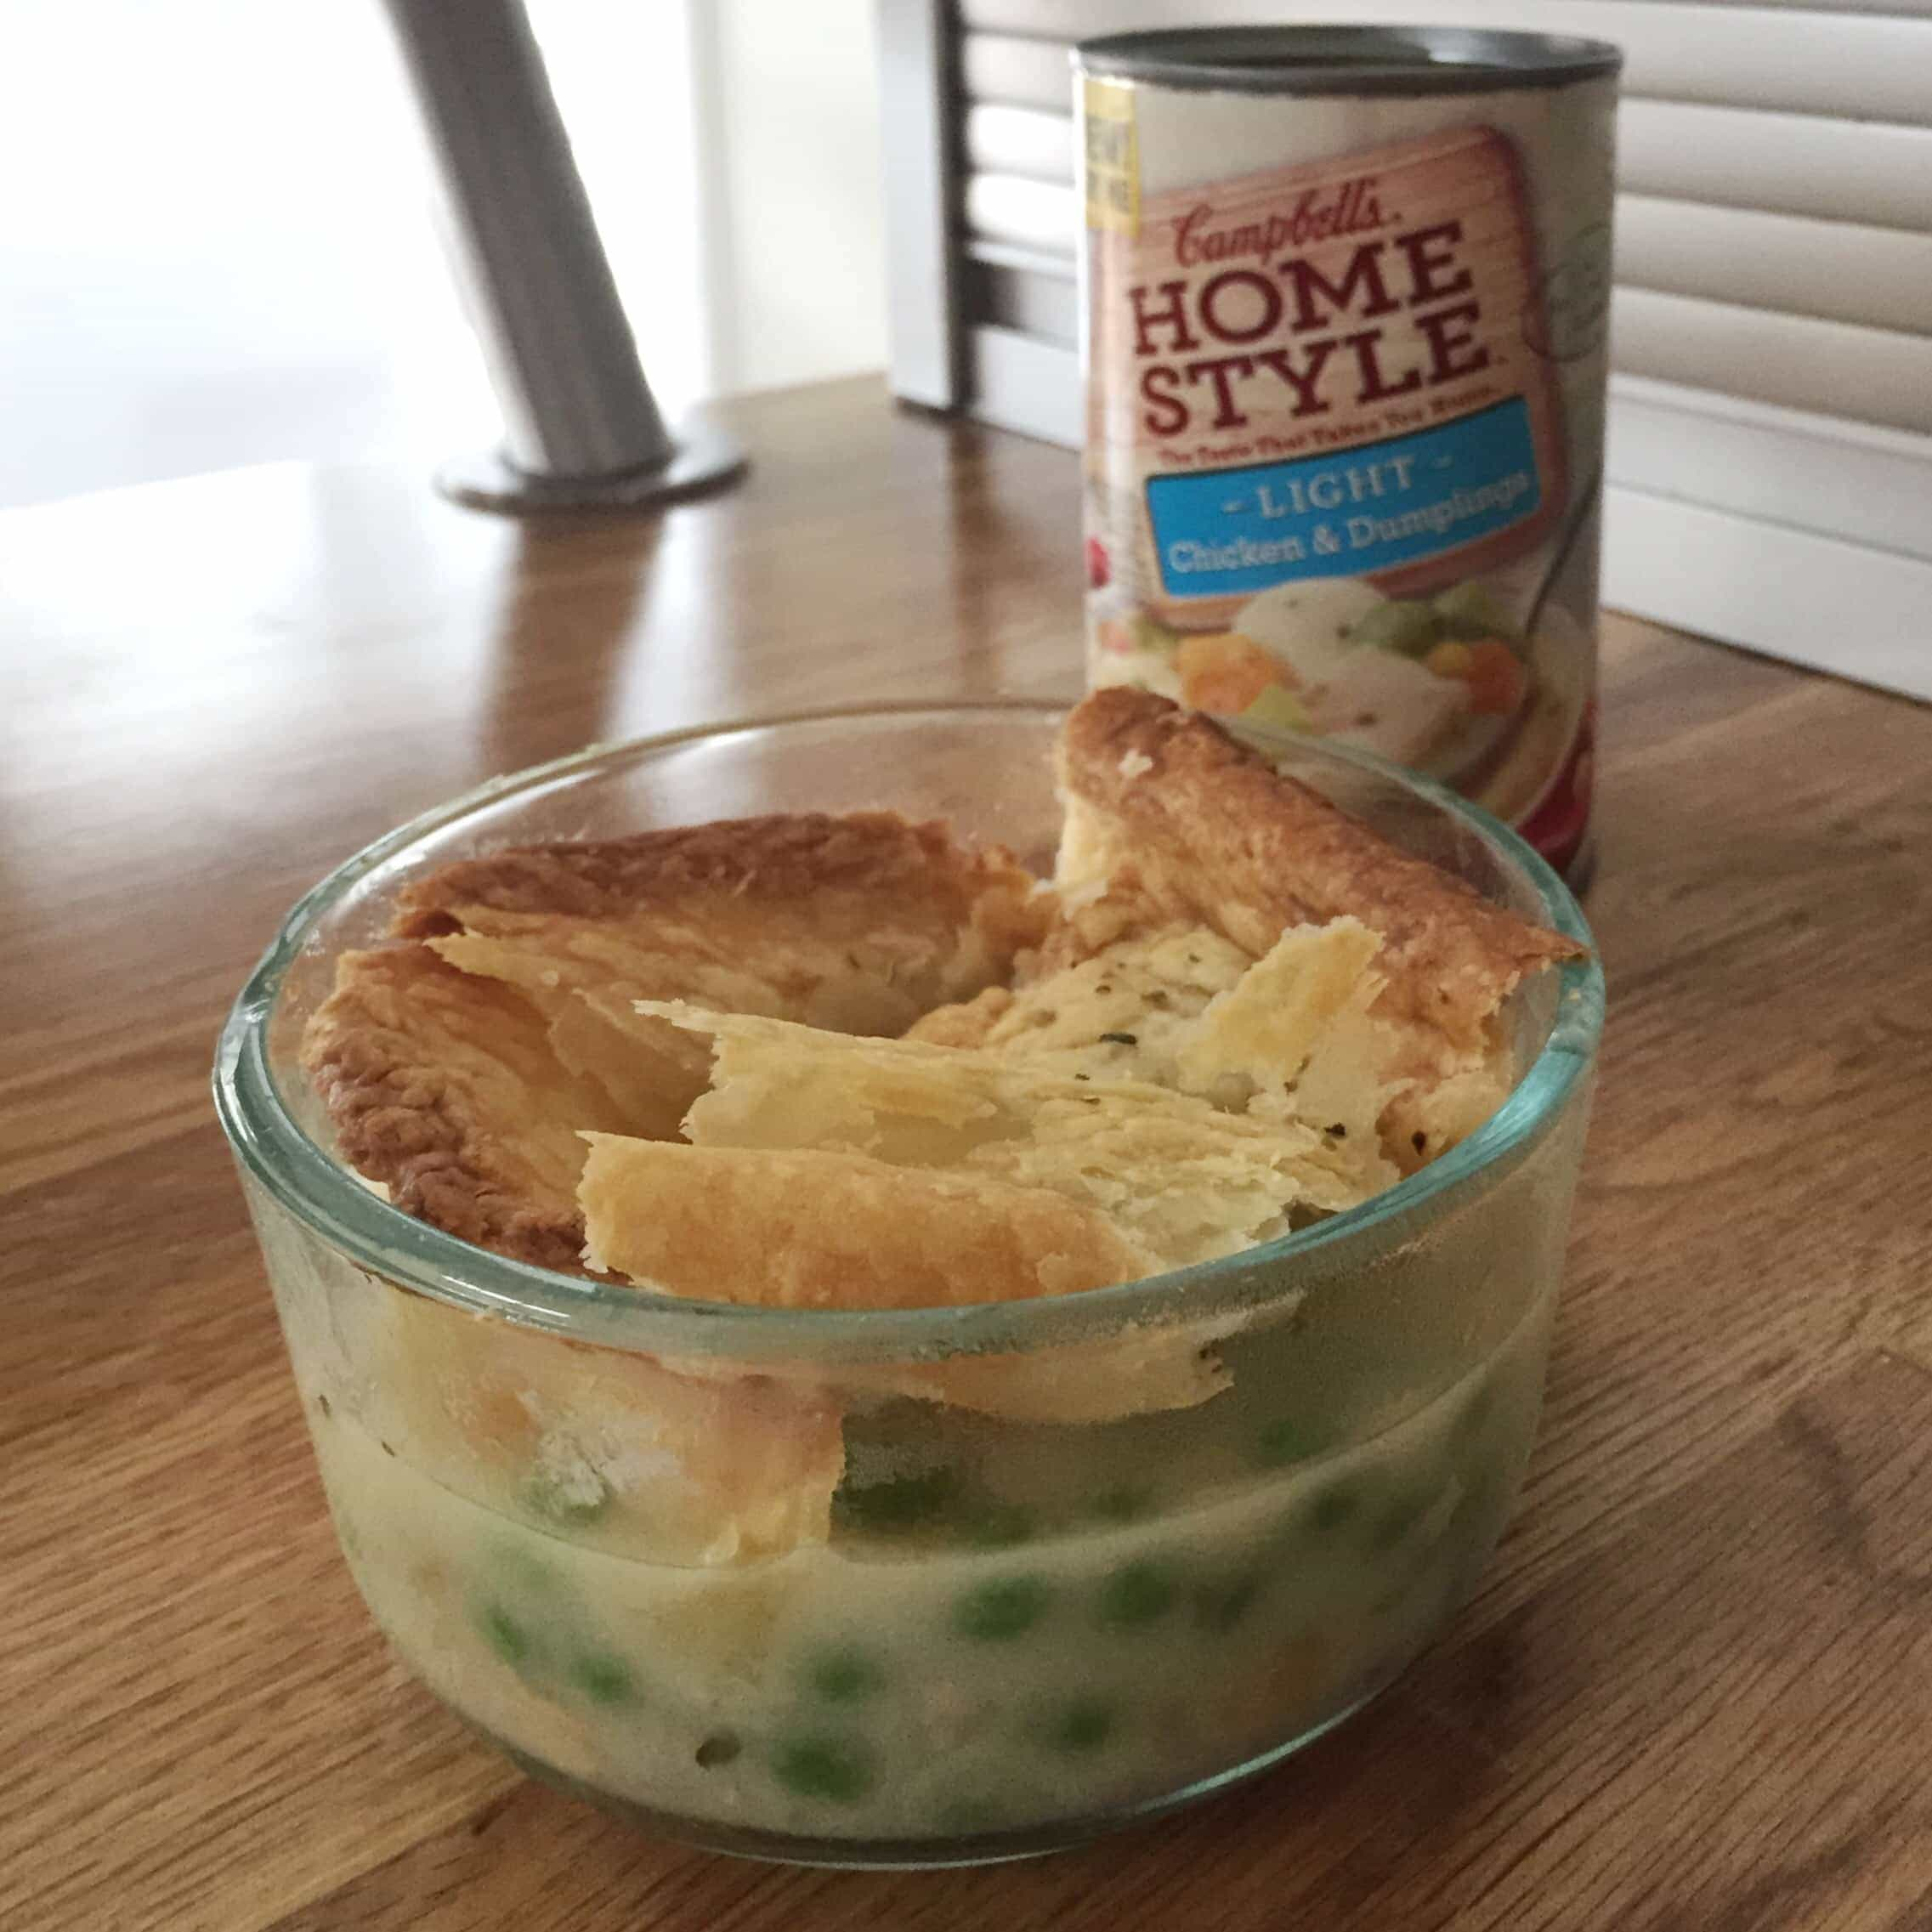 Quick chicken pot pie with Campbell's Homestyle Light